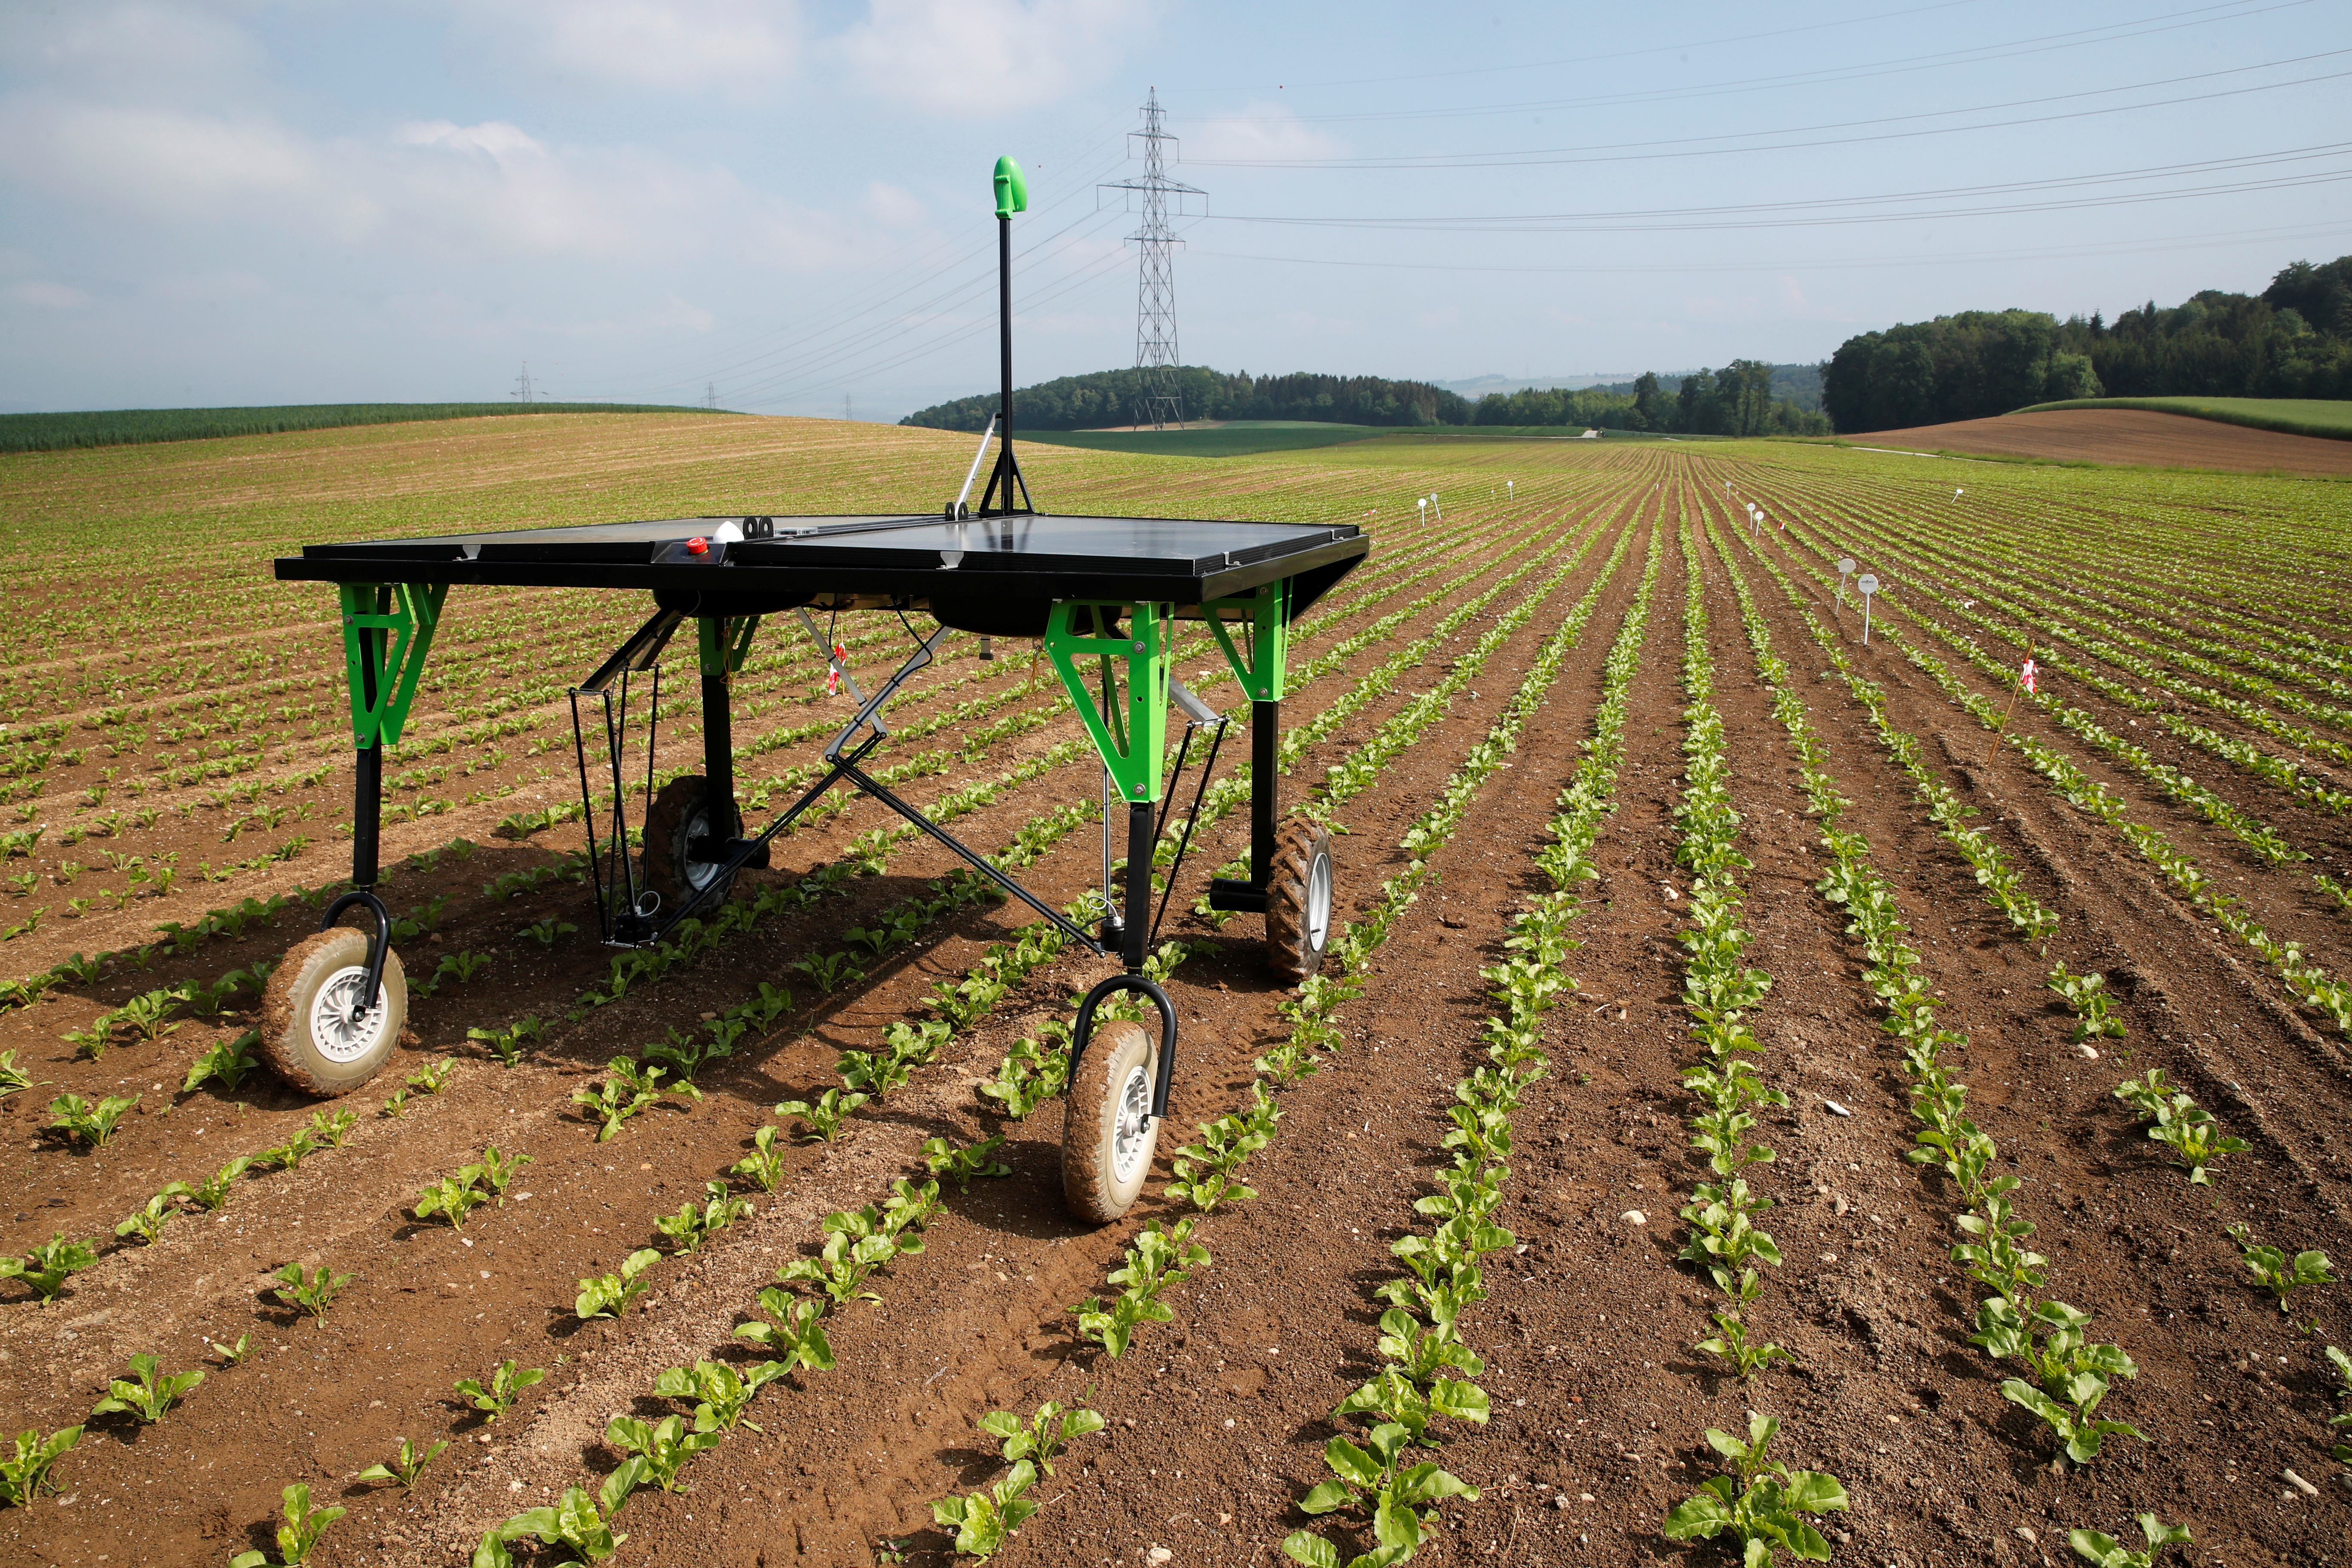 Robots fight weeds in challenge to agrochemical giants   The